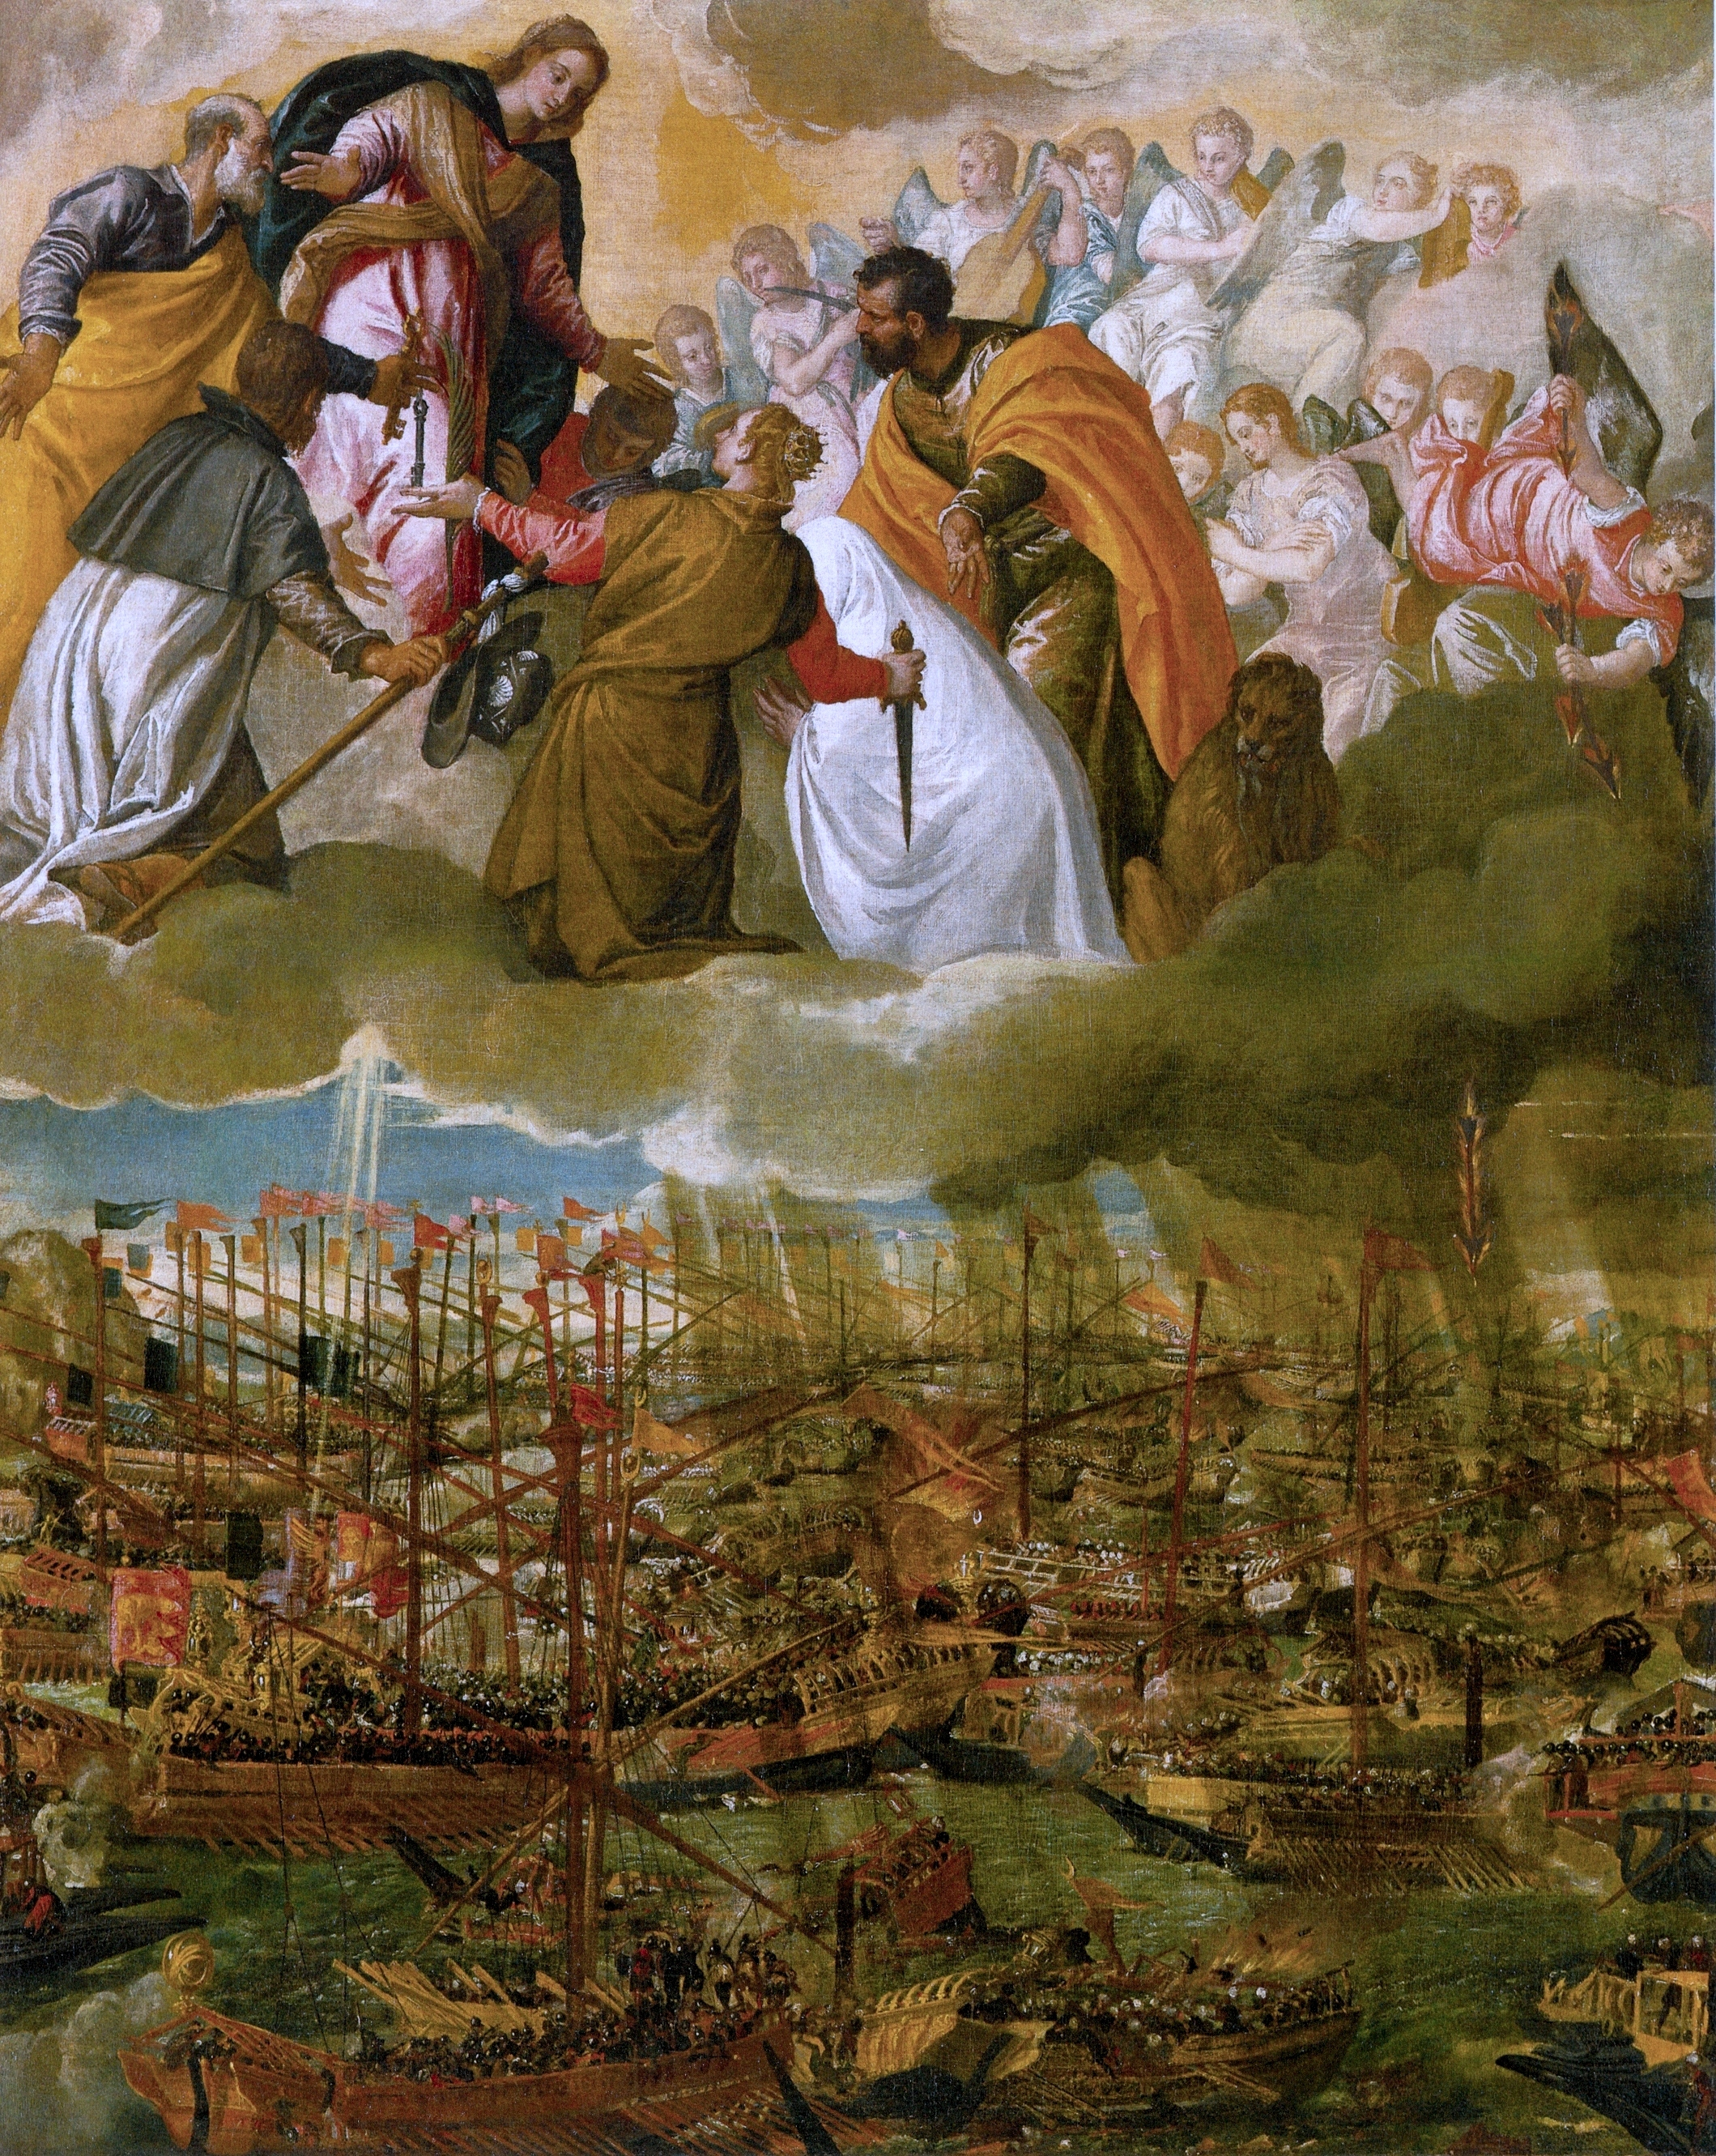 The Battle of Lepanto by Paolo Veronese, taken from Wikipedias article about the Battle of Lepanto.